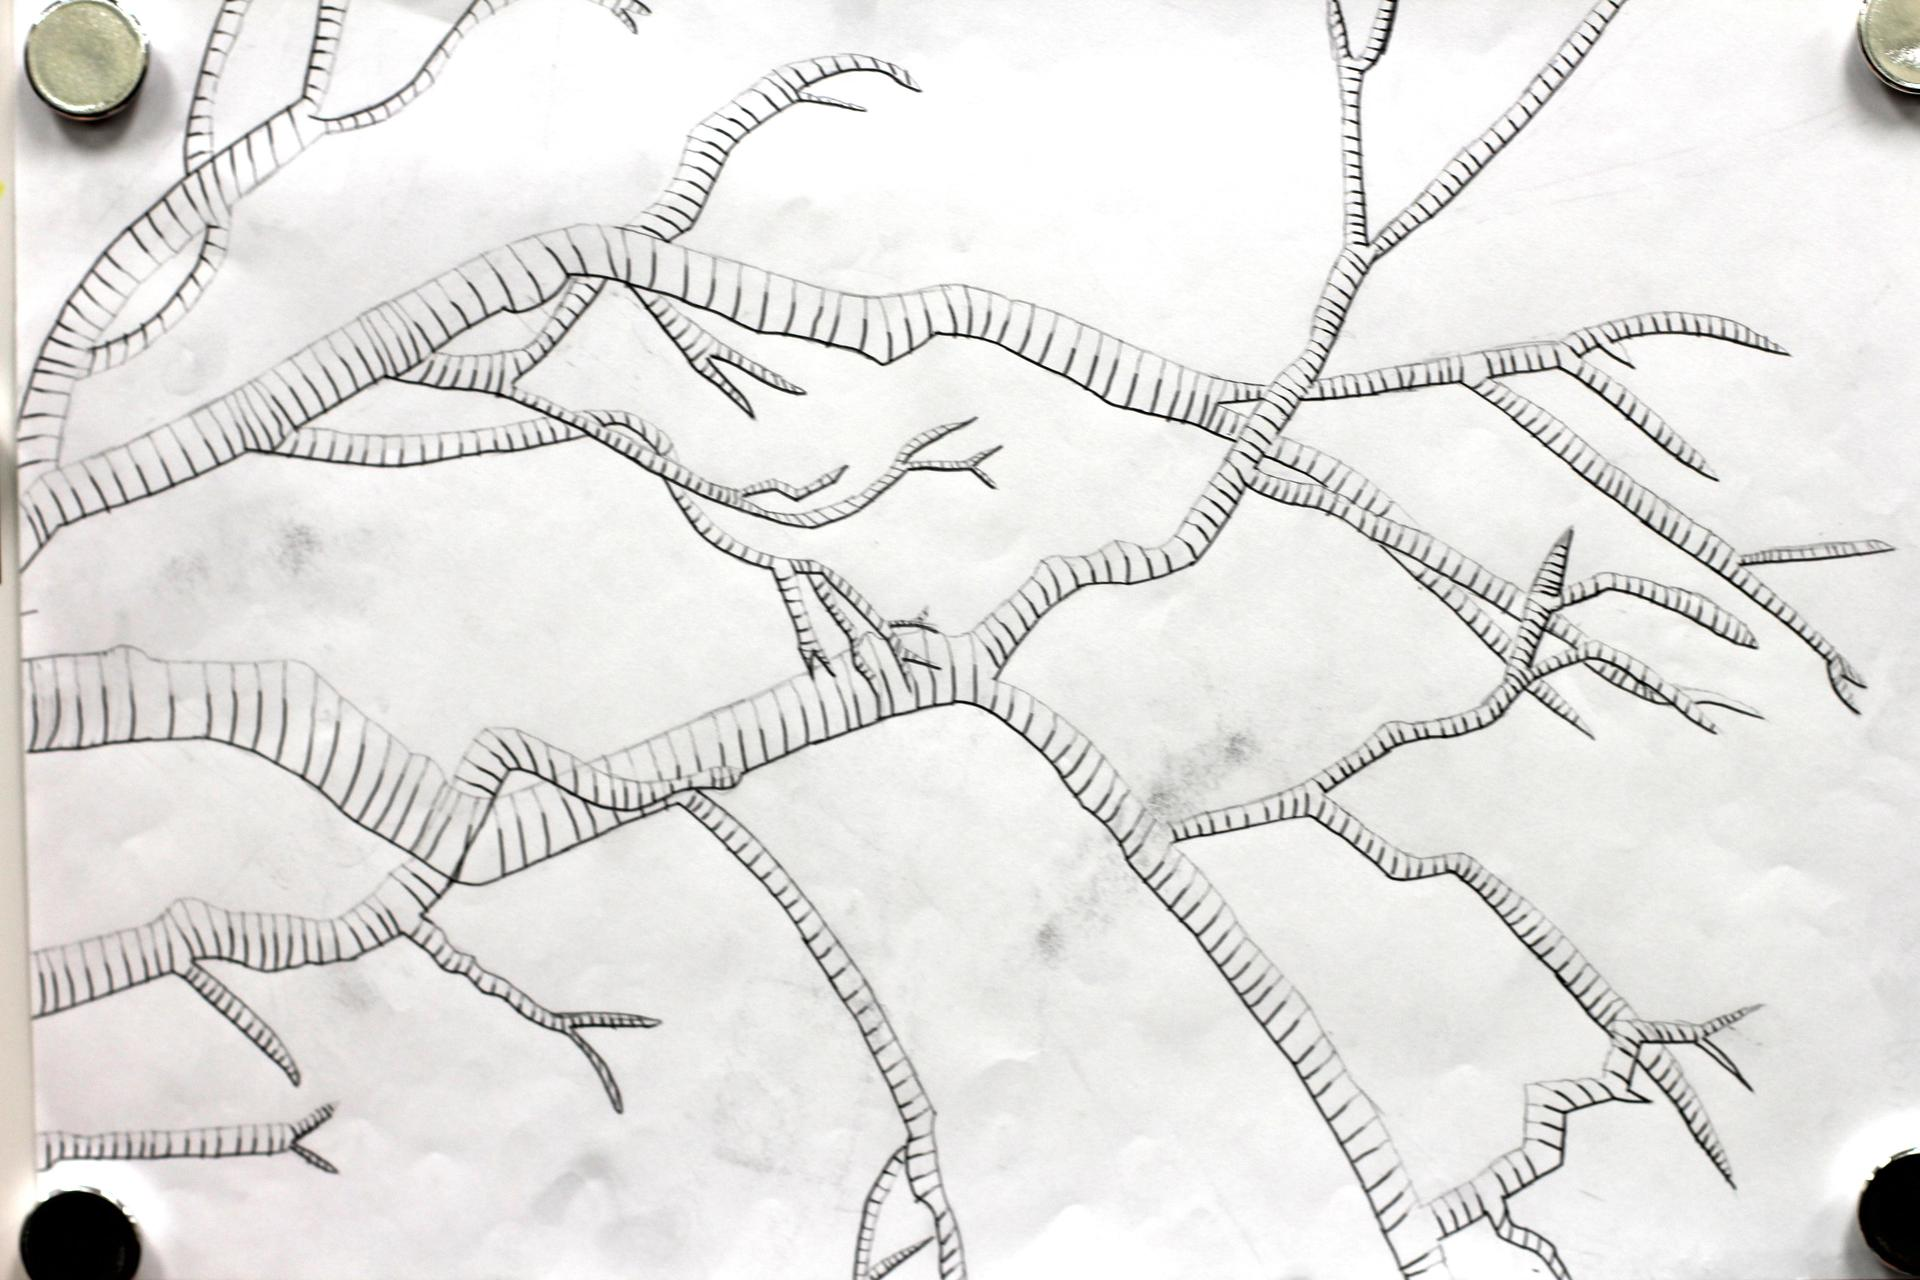 AHS Art line drawing of tree branches